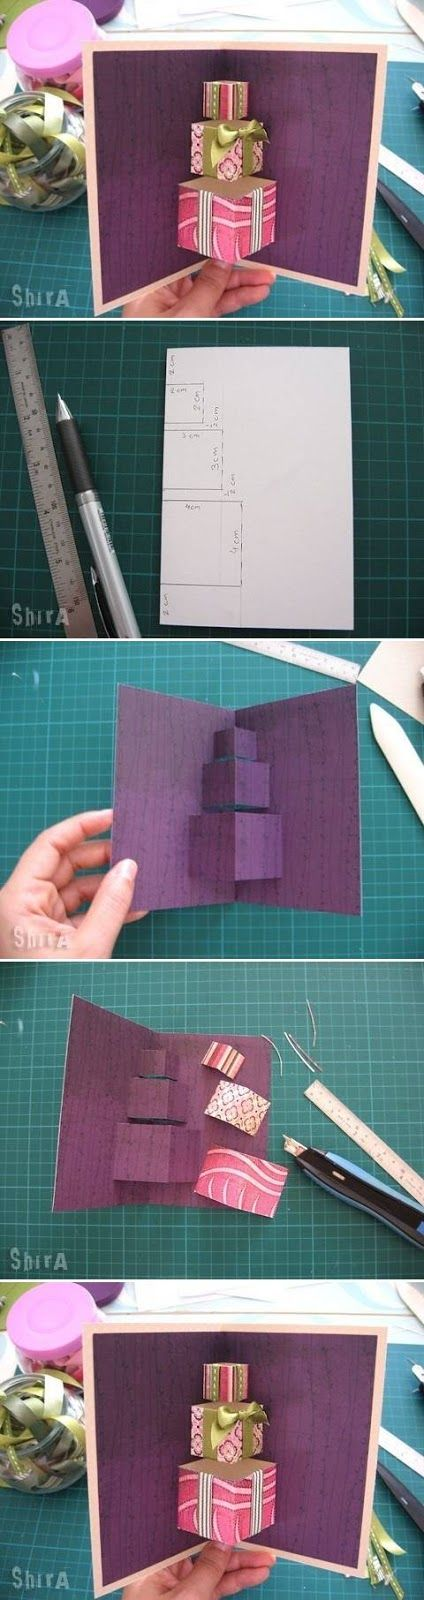 Popular DIY Crafts Blog: How to Make Simple 3D Gift Card